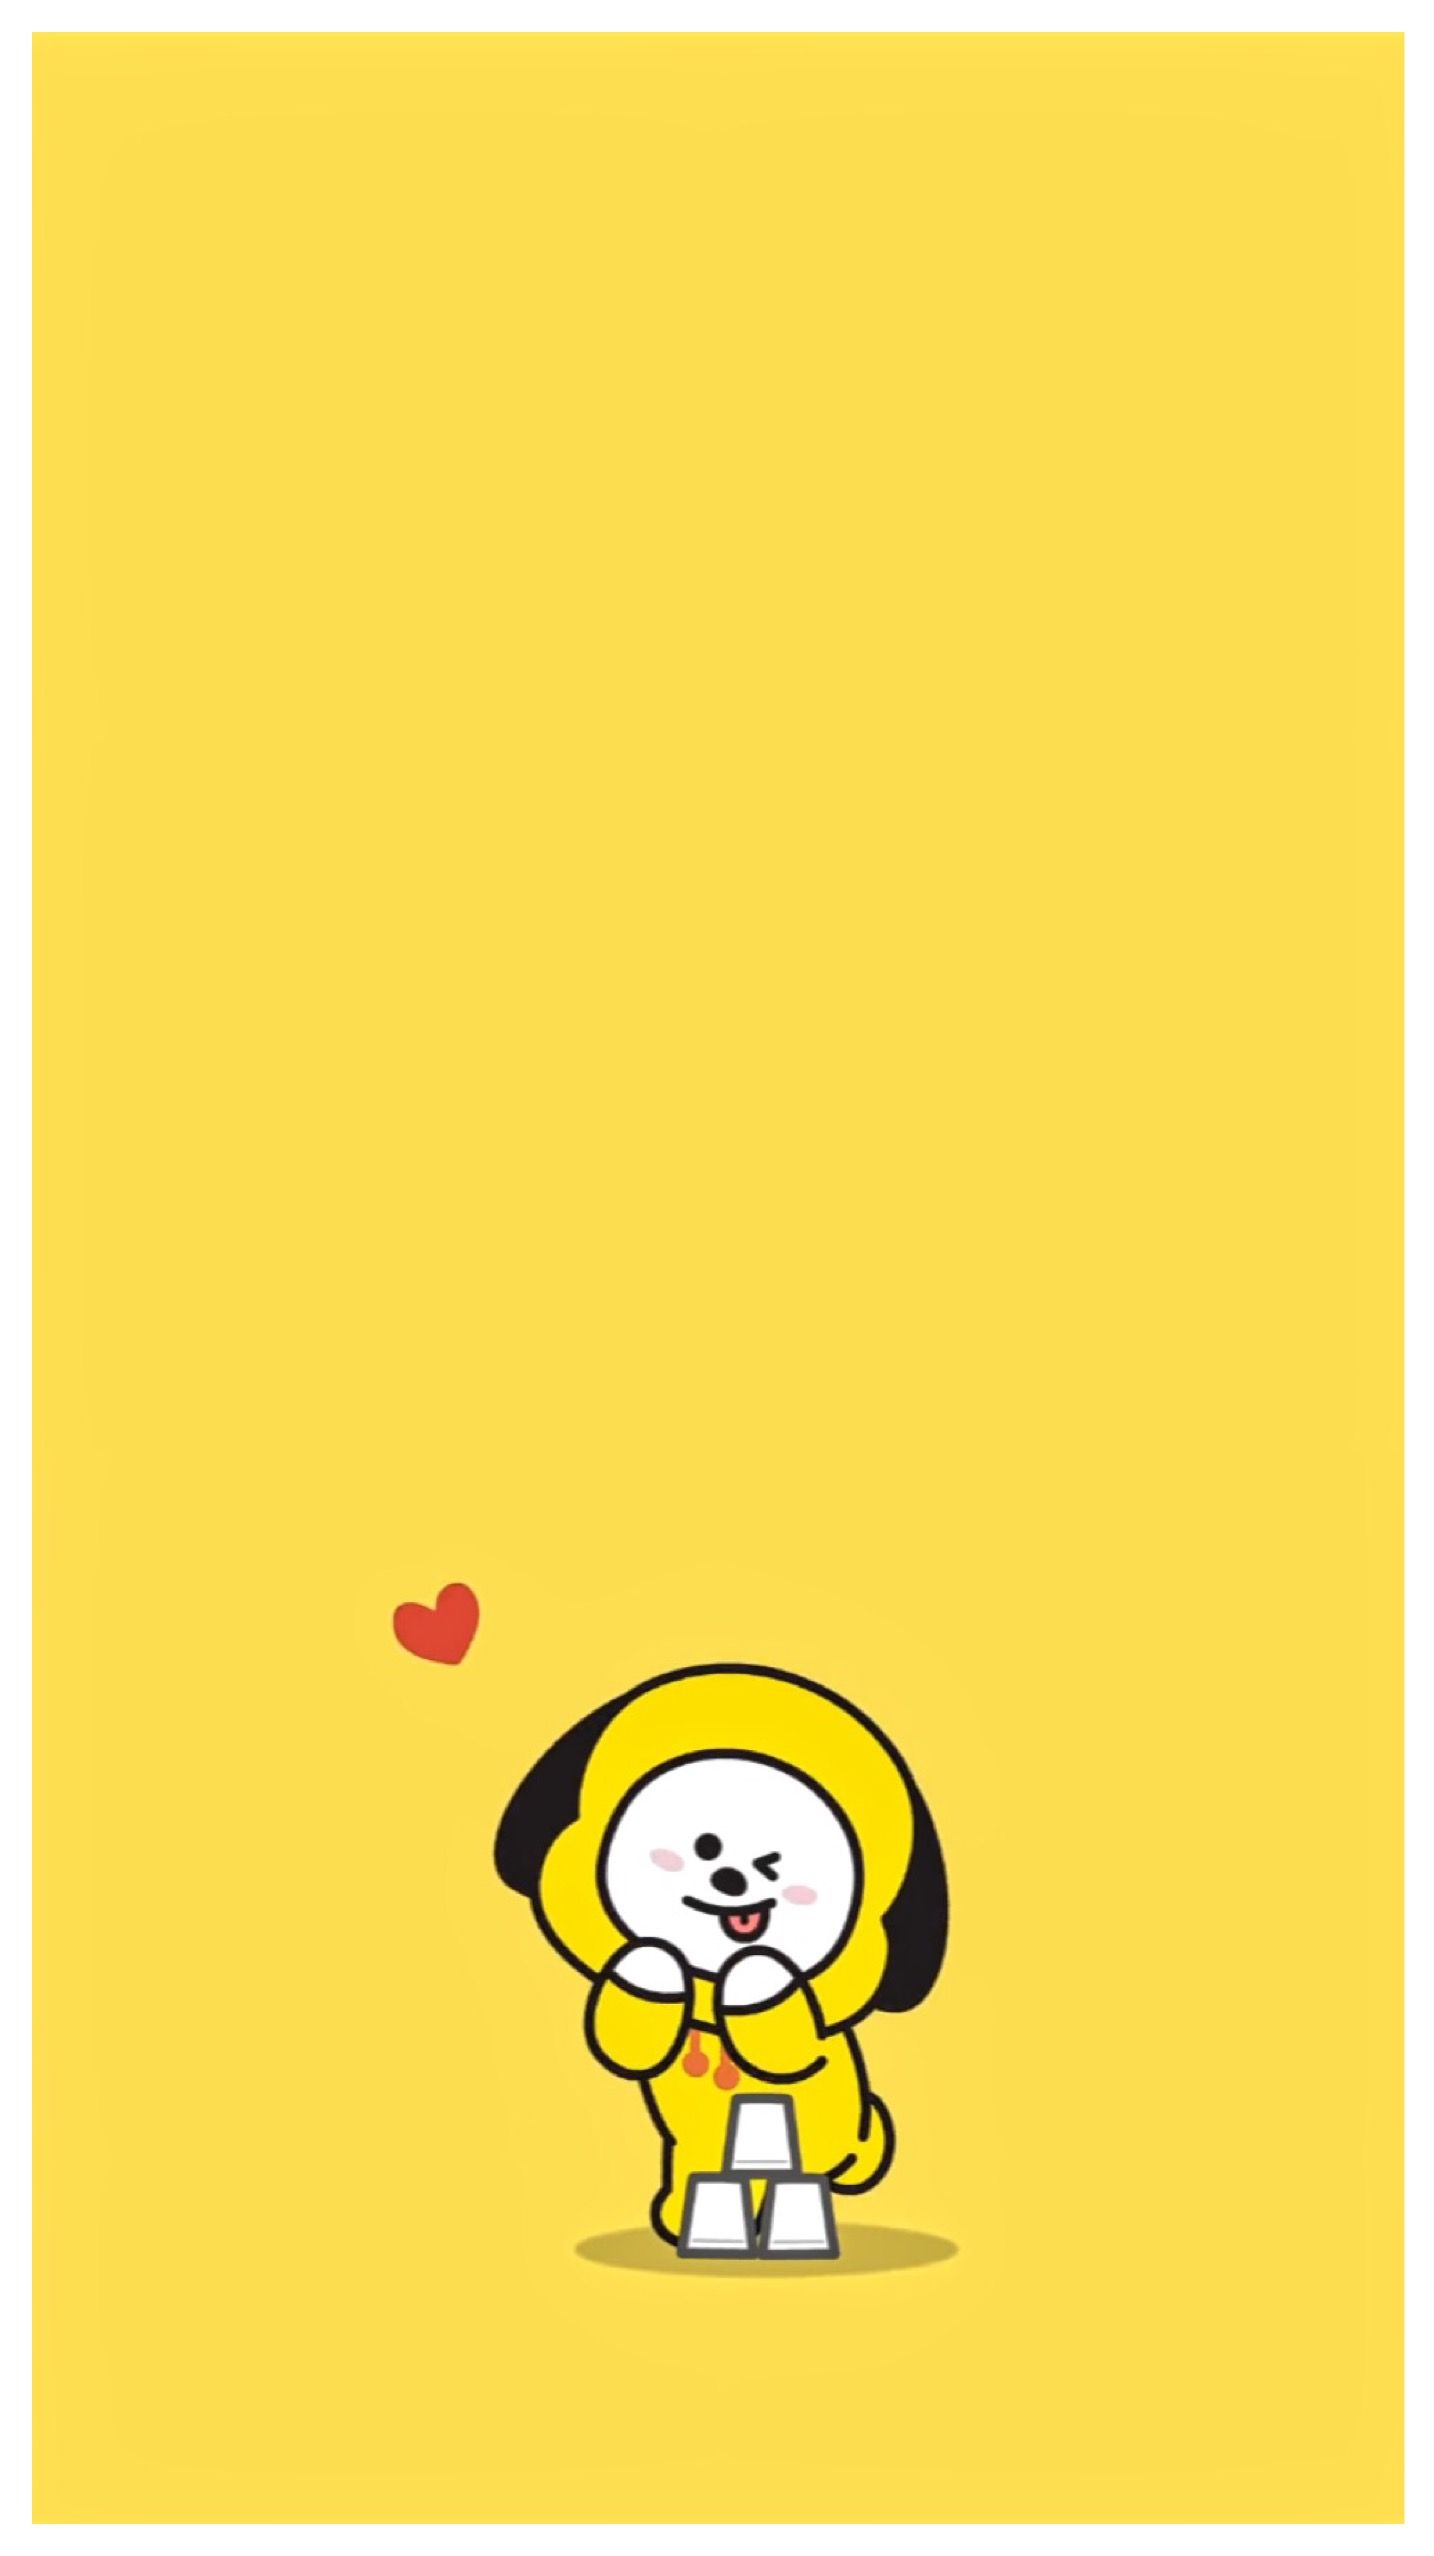 Bts Bt21 Wallpaper Chimmy Parkjimin Art Bts Wallpaper Bts Bts